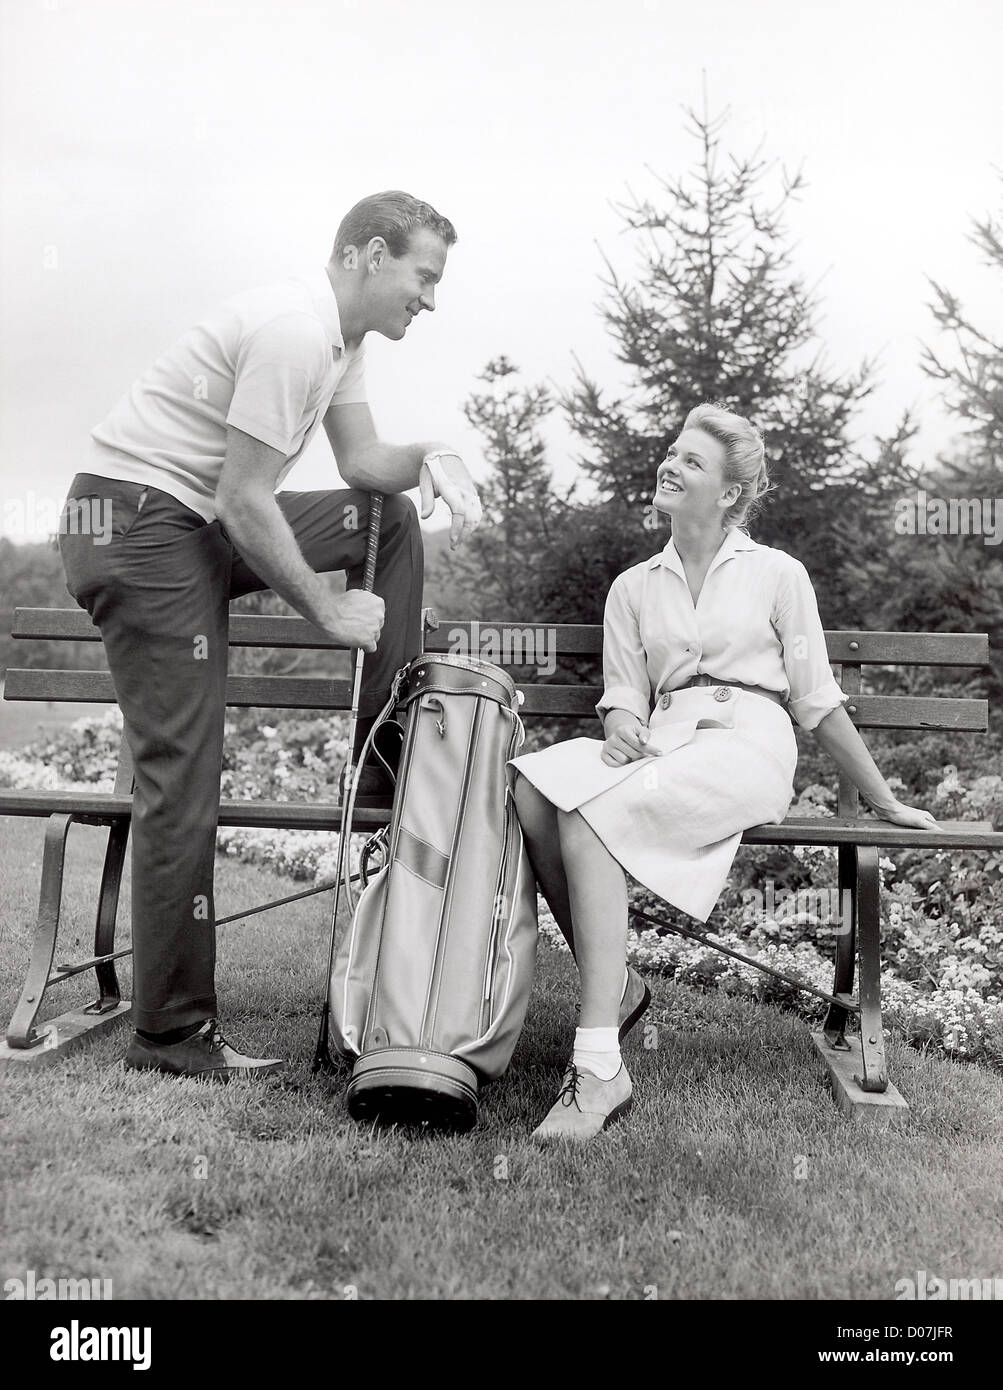 Vintage Golf High Resolution Stock Photography And Images Alamy